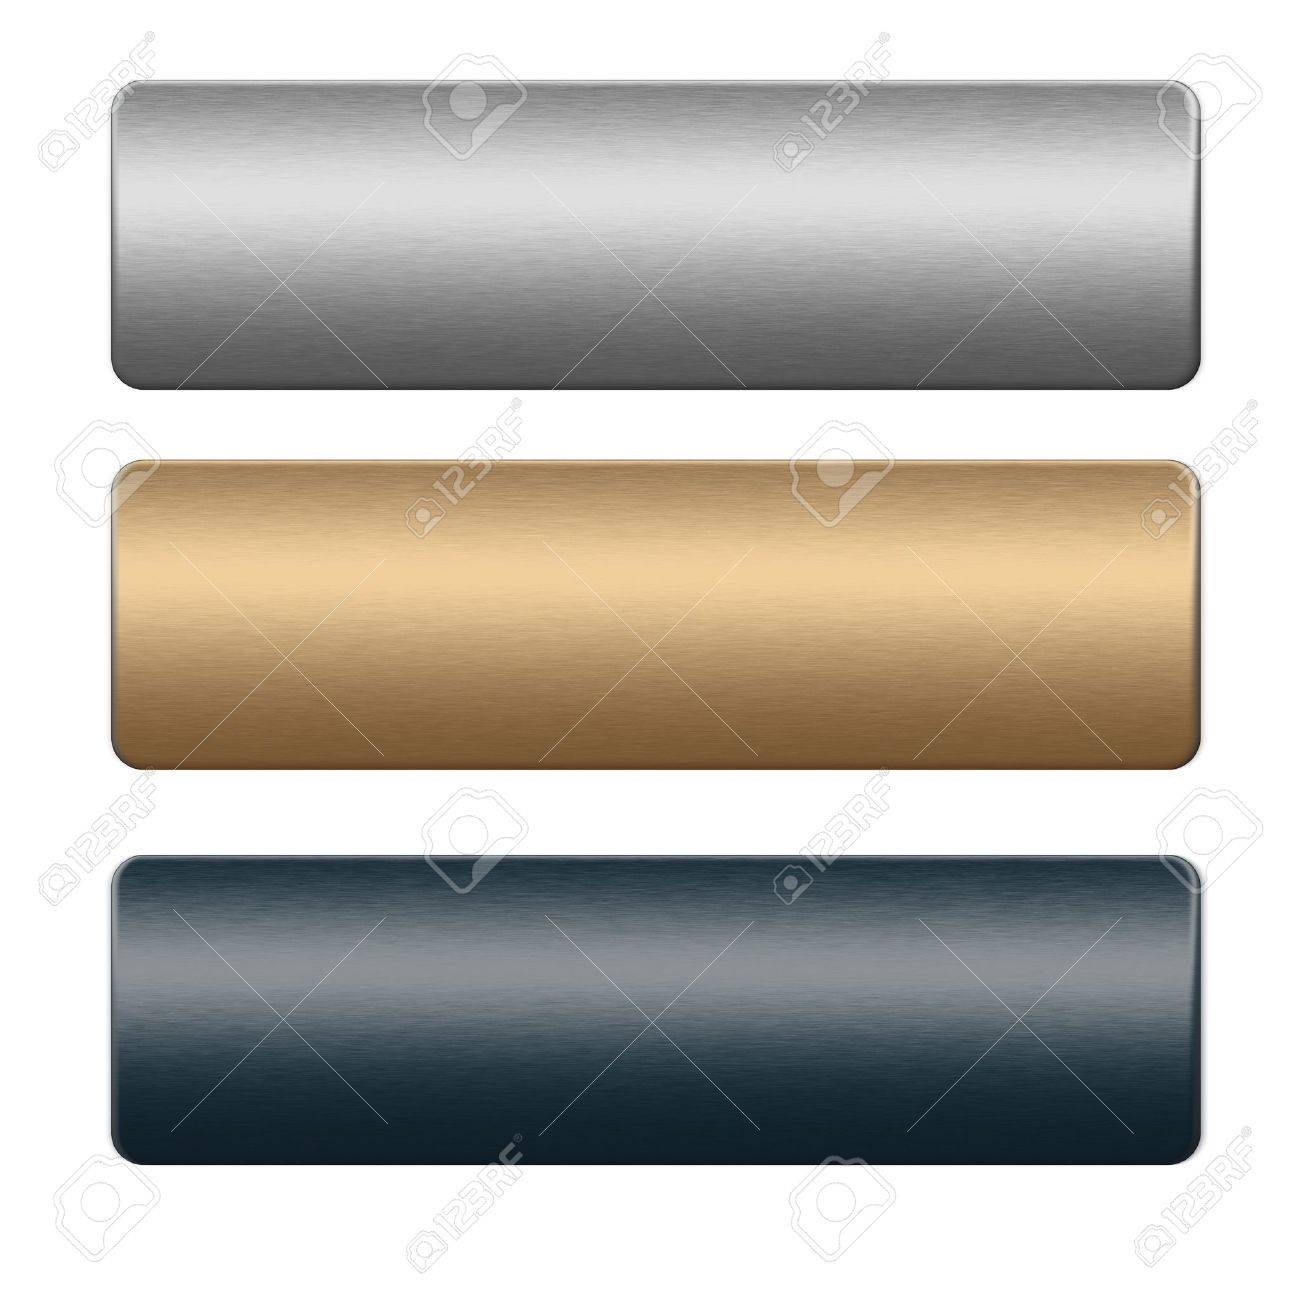 Chrome boards. silver, gold and blue texture, background to insert text or design Stock Photo - 11883017